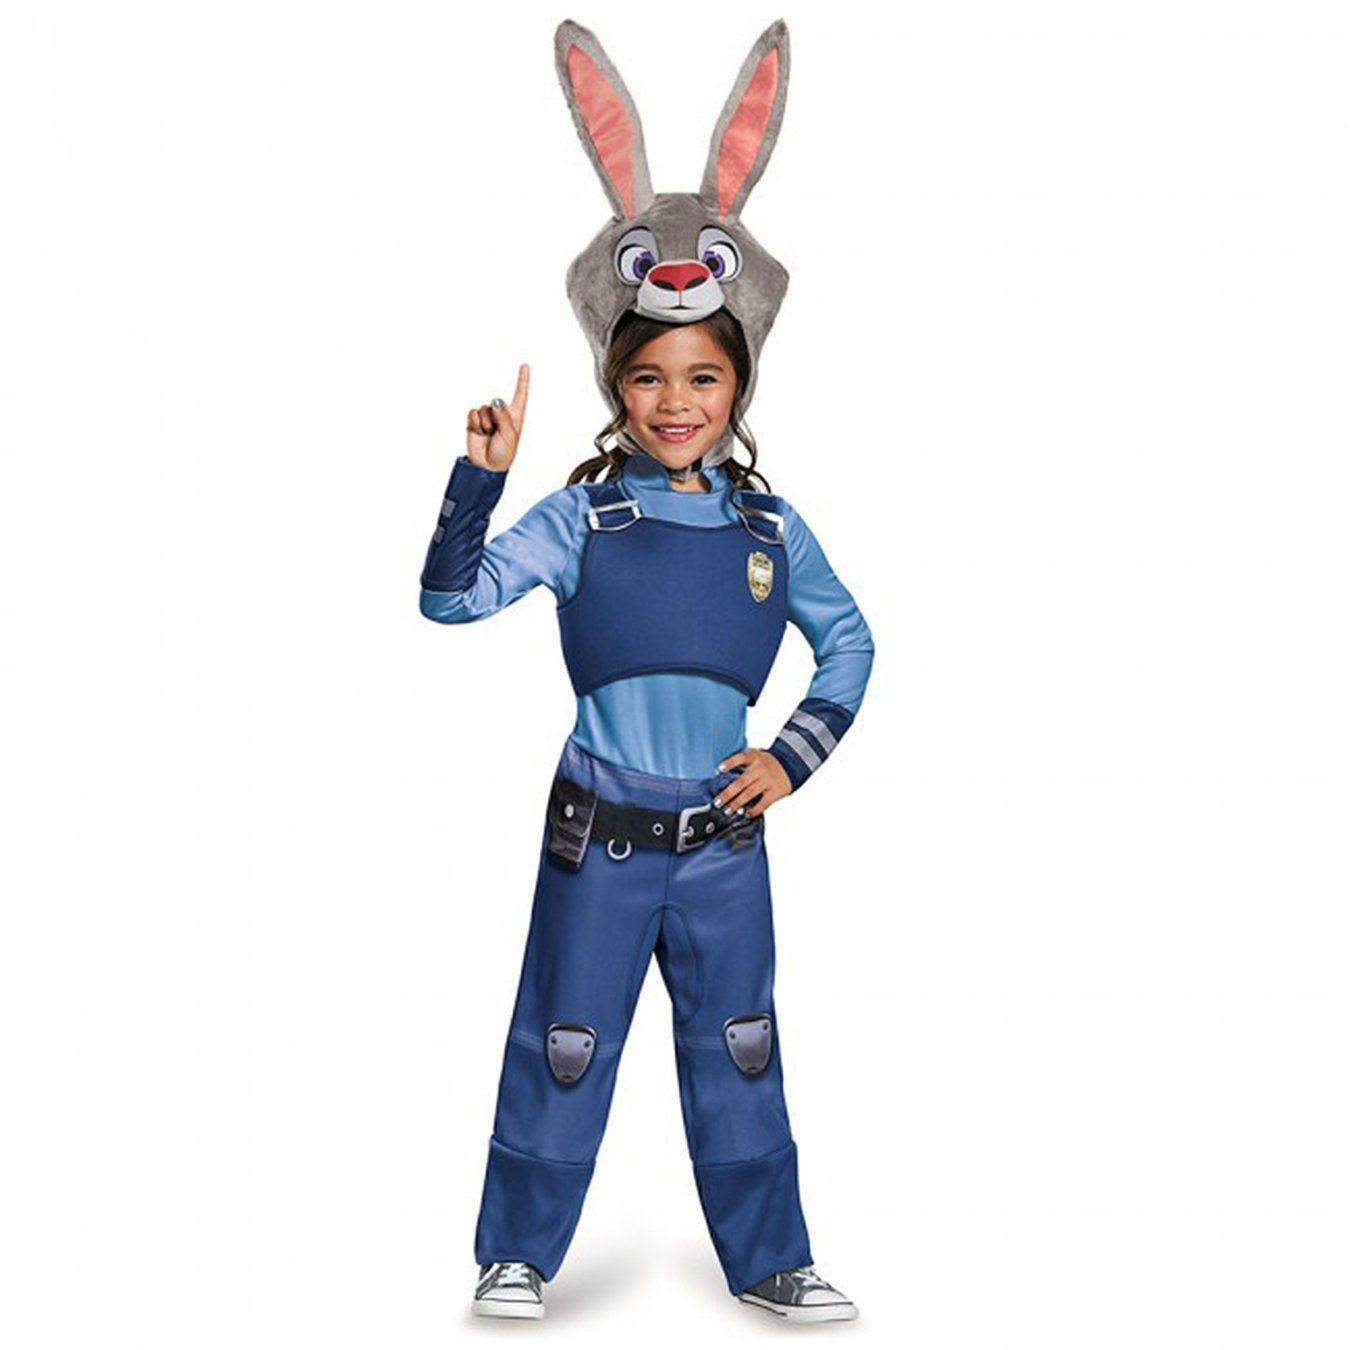 95 Disney Halloween Costumes - Best Disney Costumes for Halloween 2018